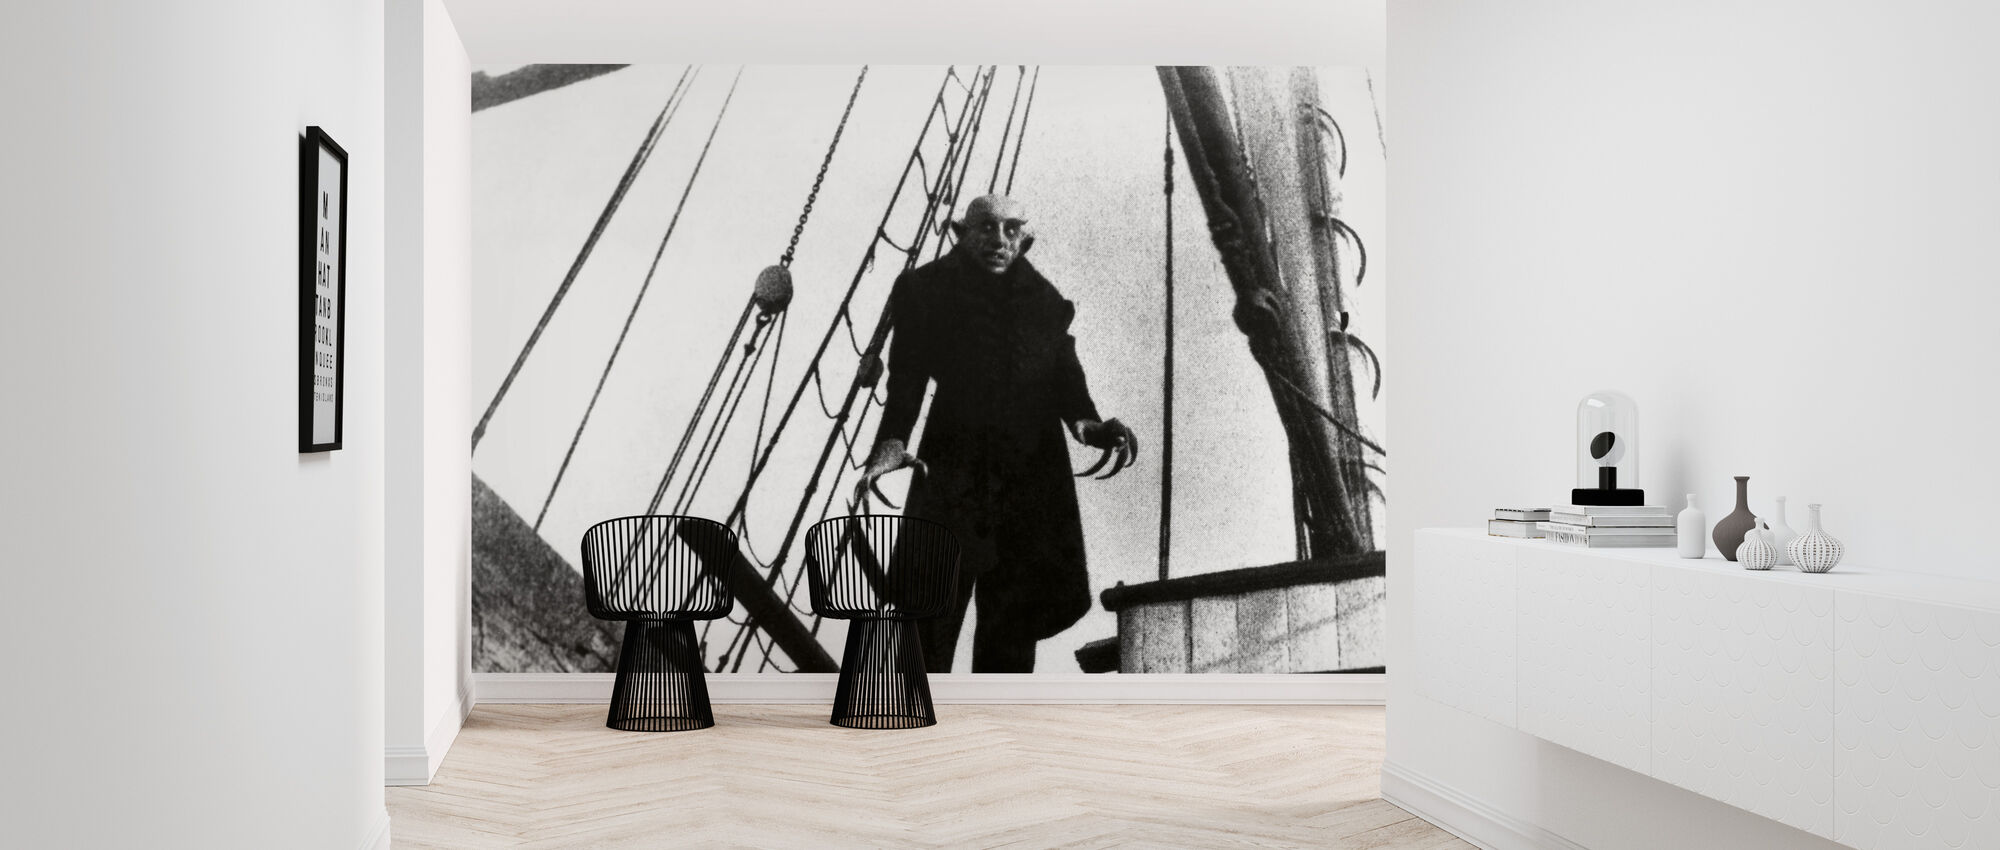 Max Schreck in Nosferatu the Vampire - Wallpaper - Hallway